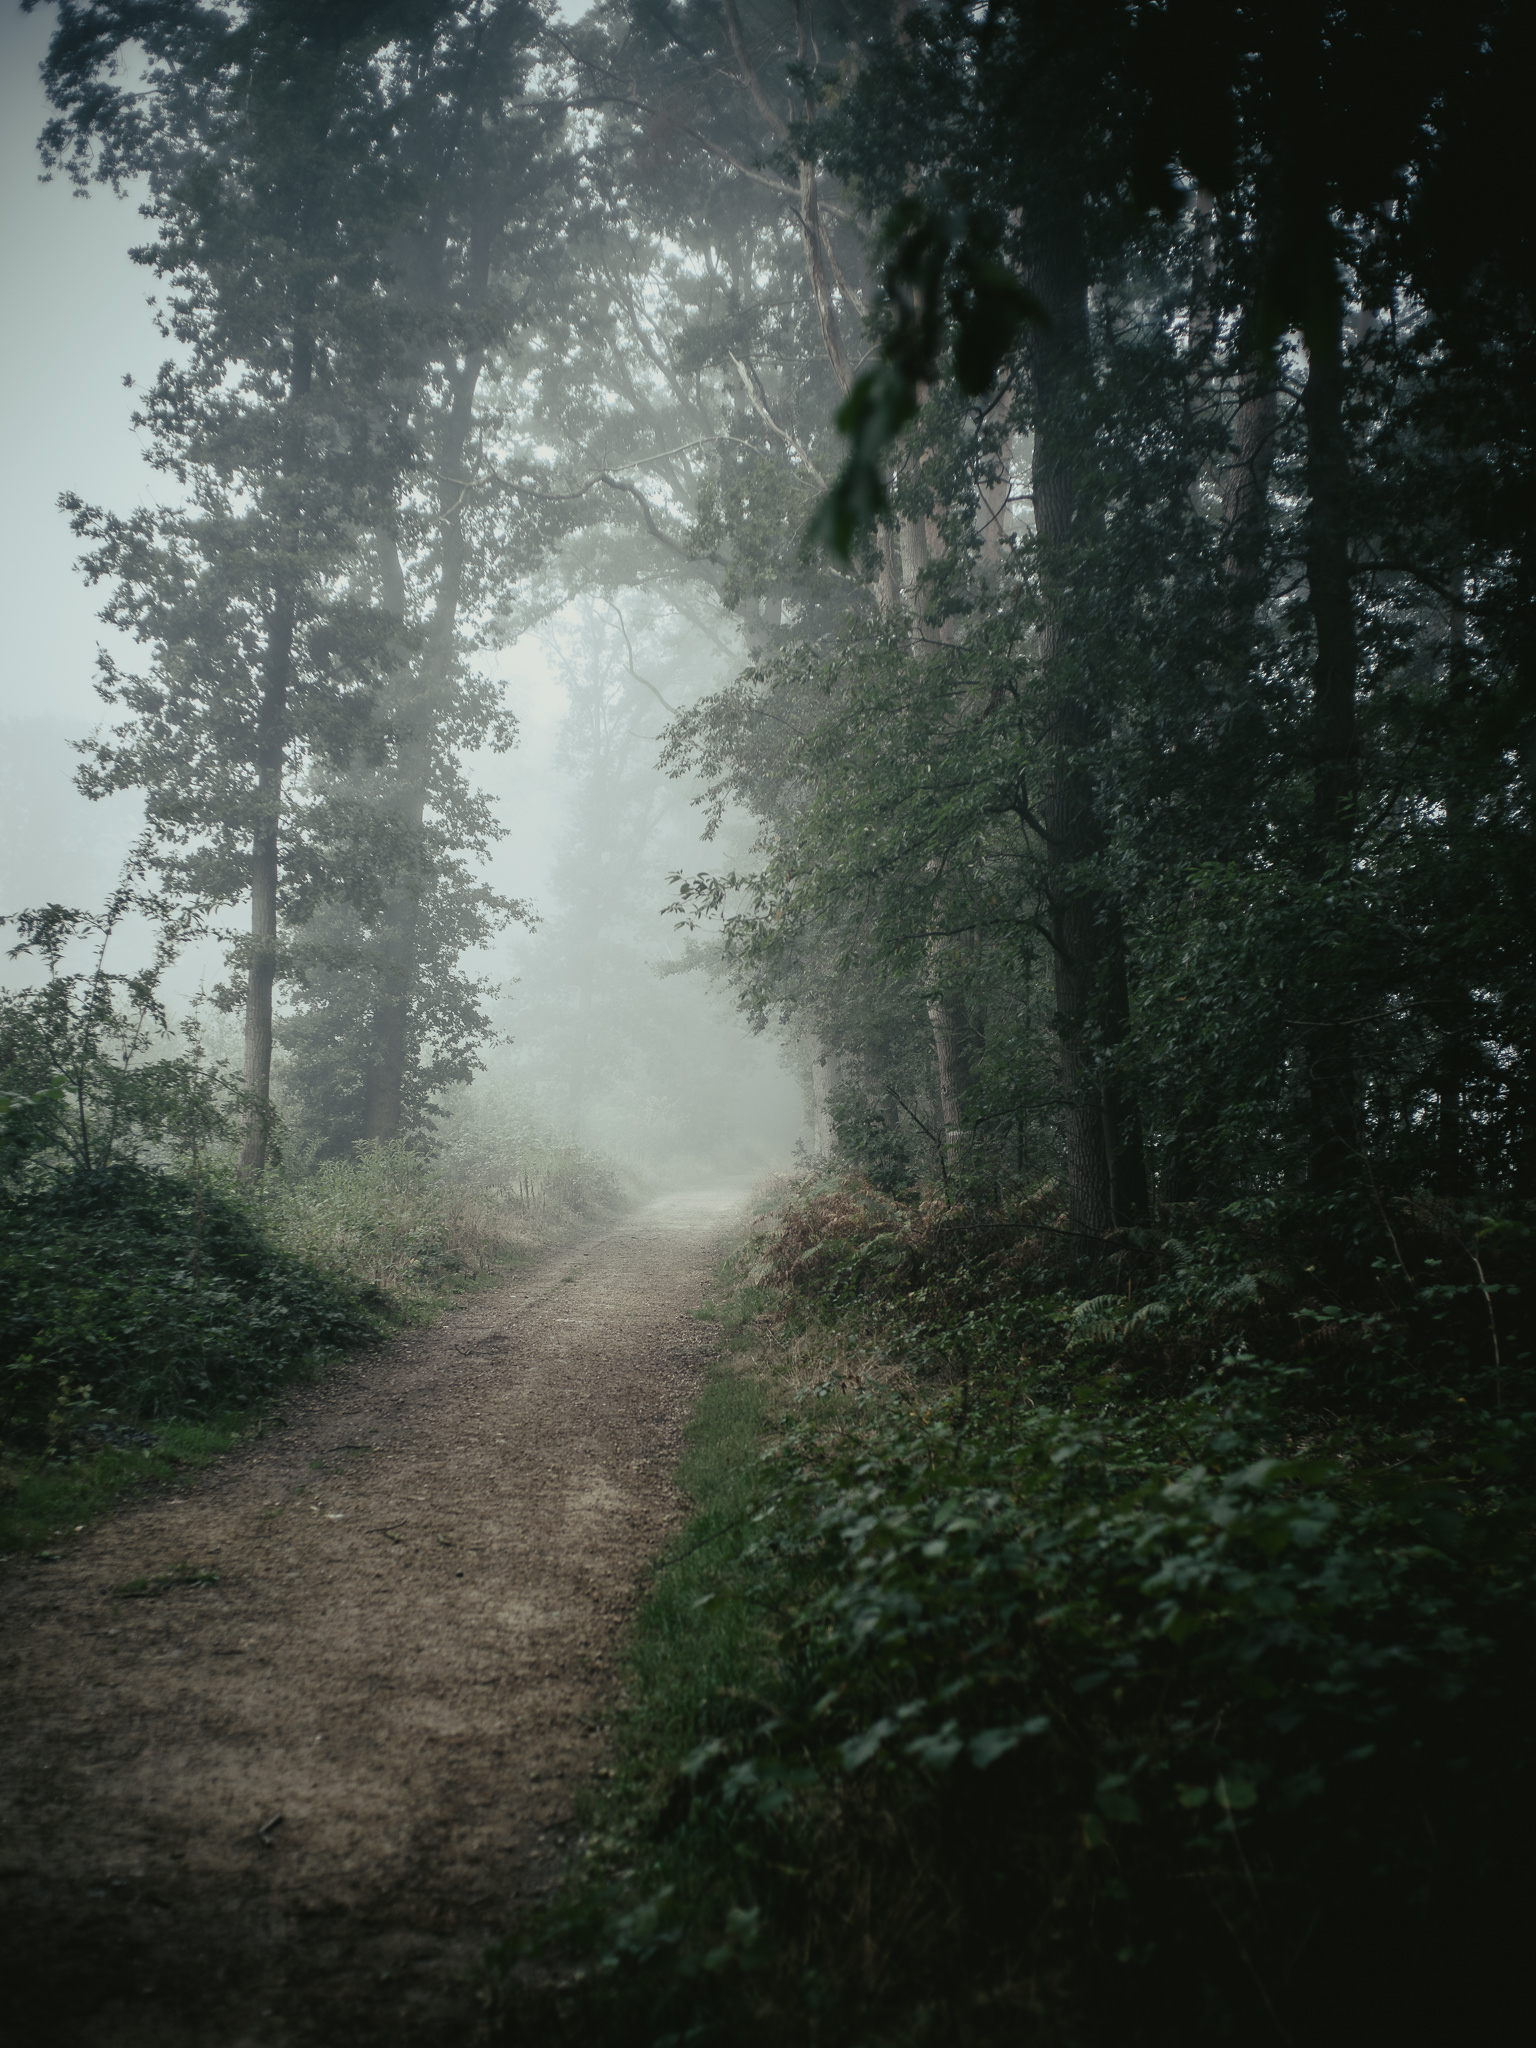 Misty Woods seen and photographed by Martin Nienberg